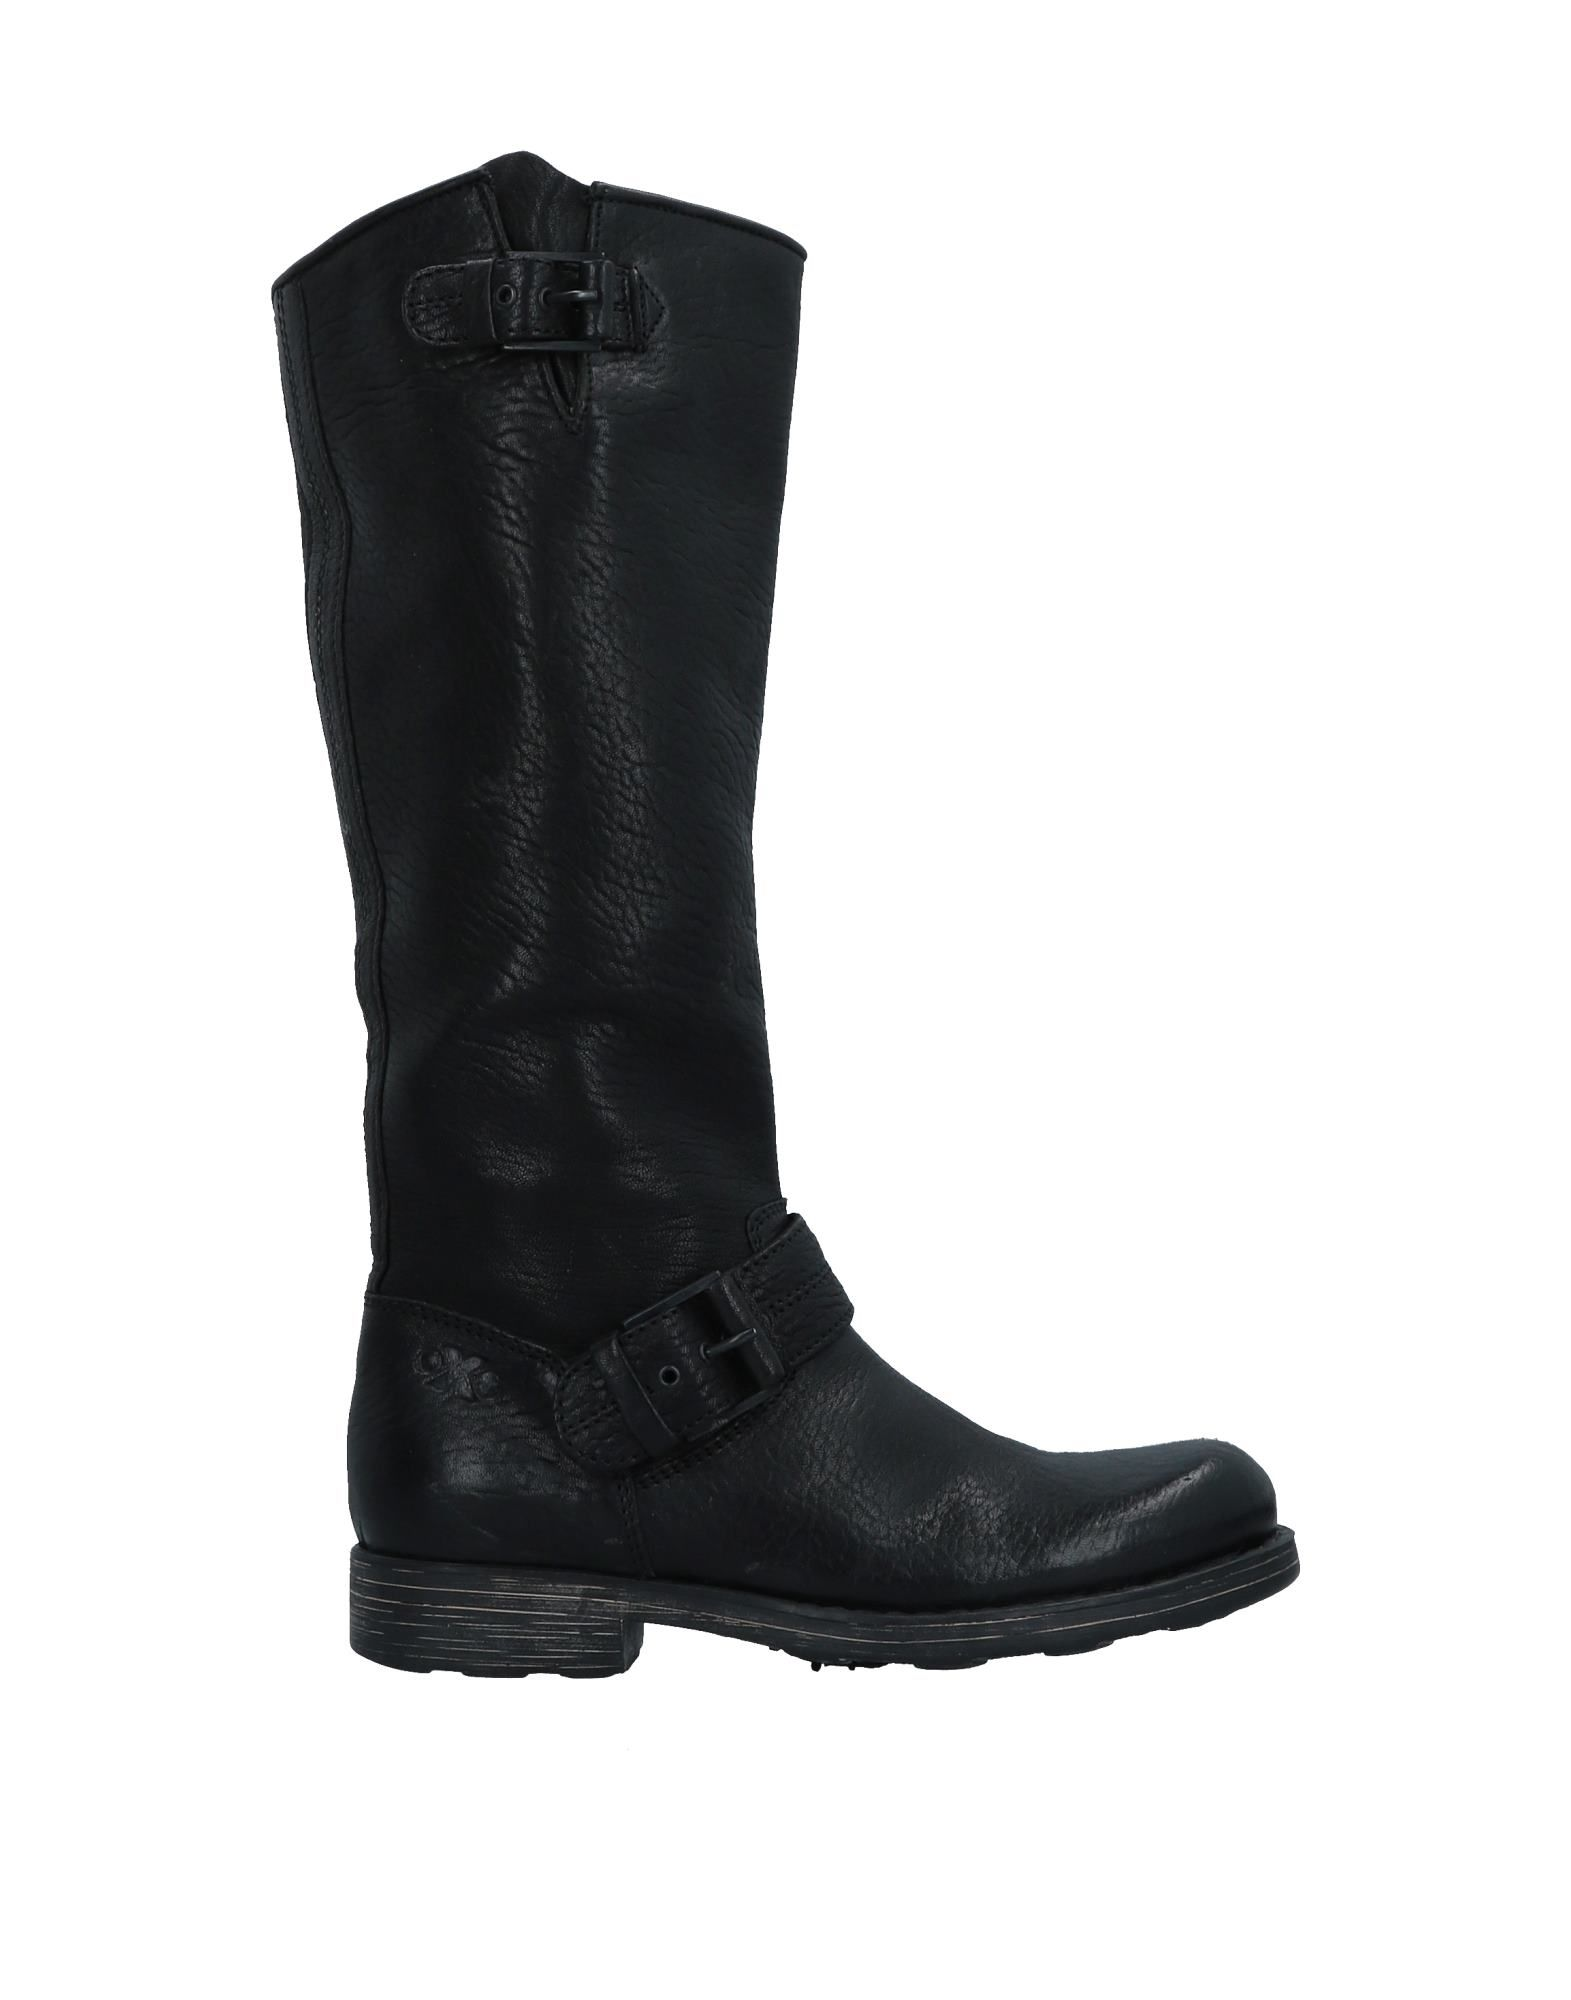 O.X.S. Boots  - Women O.X.S. Boots online on  Boots Canada - 11518542BC b75802